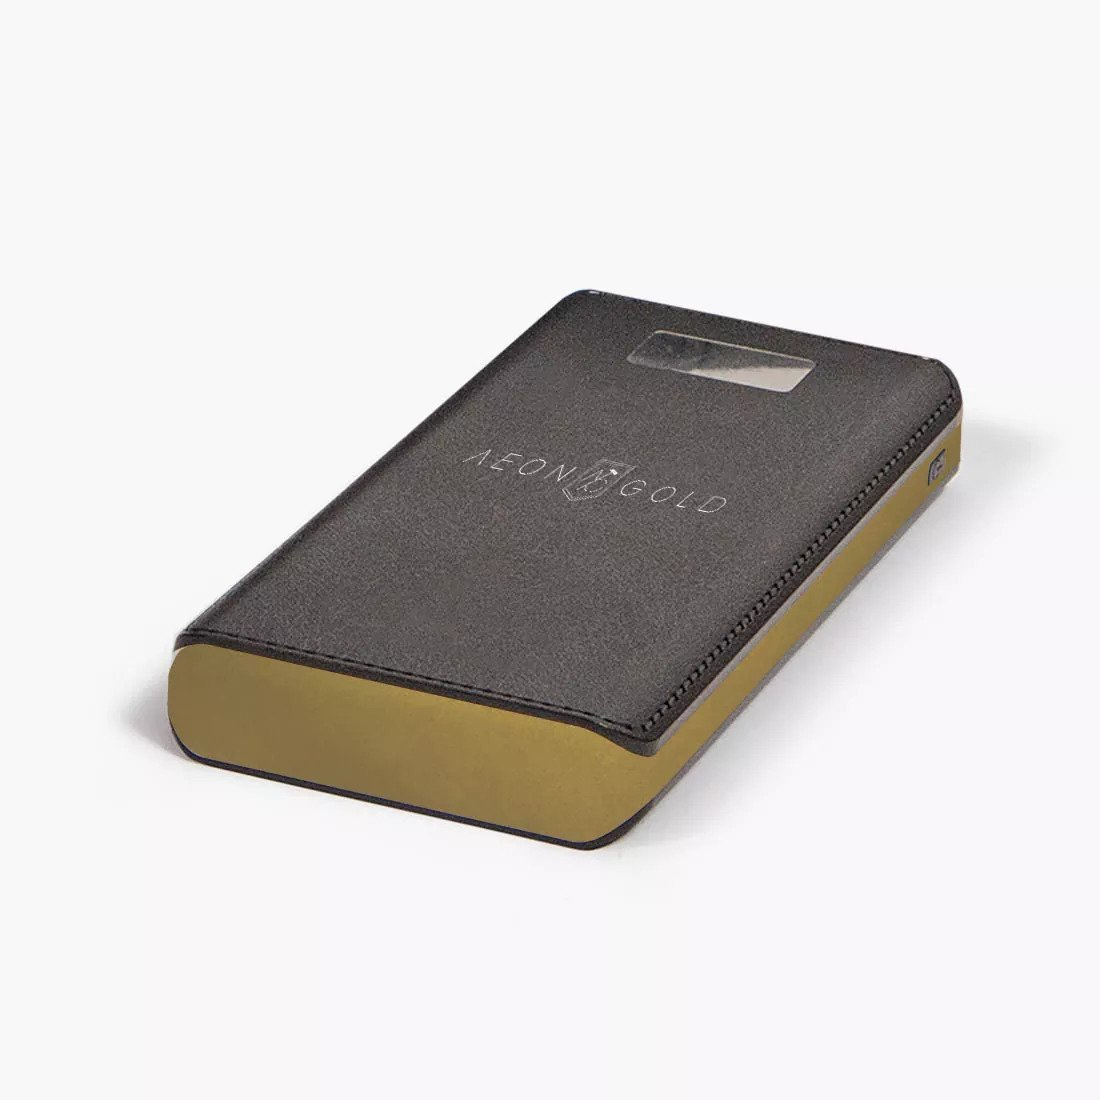 Lagio luxury lapdesk power bank